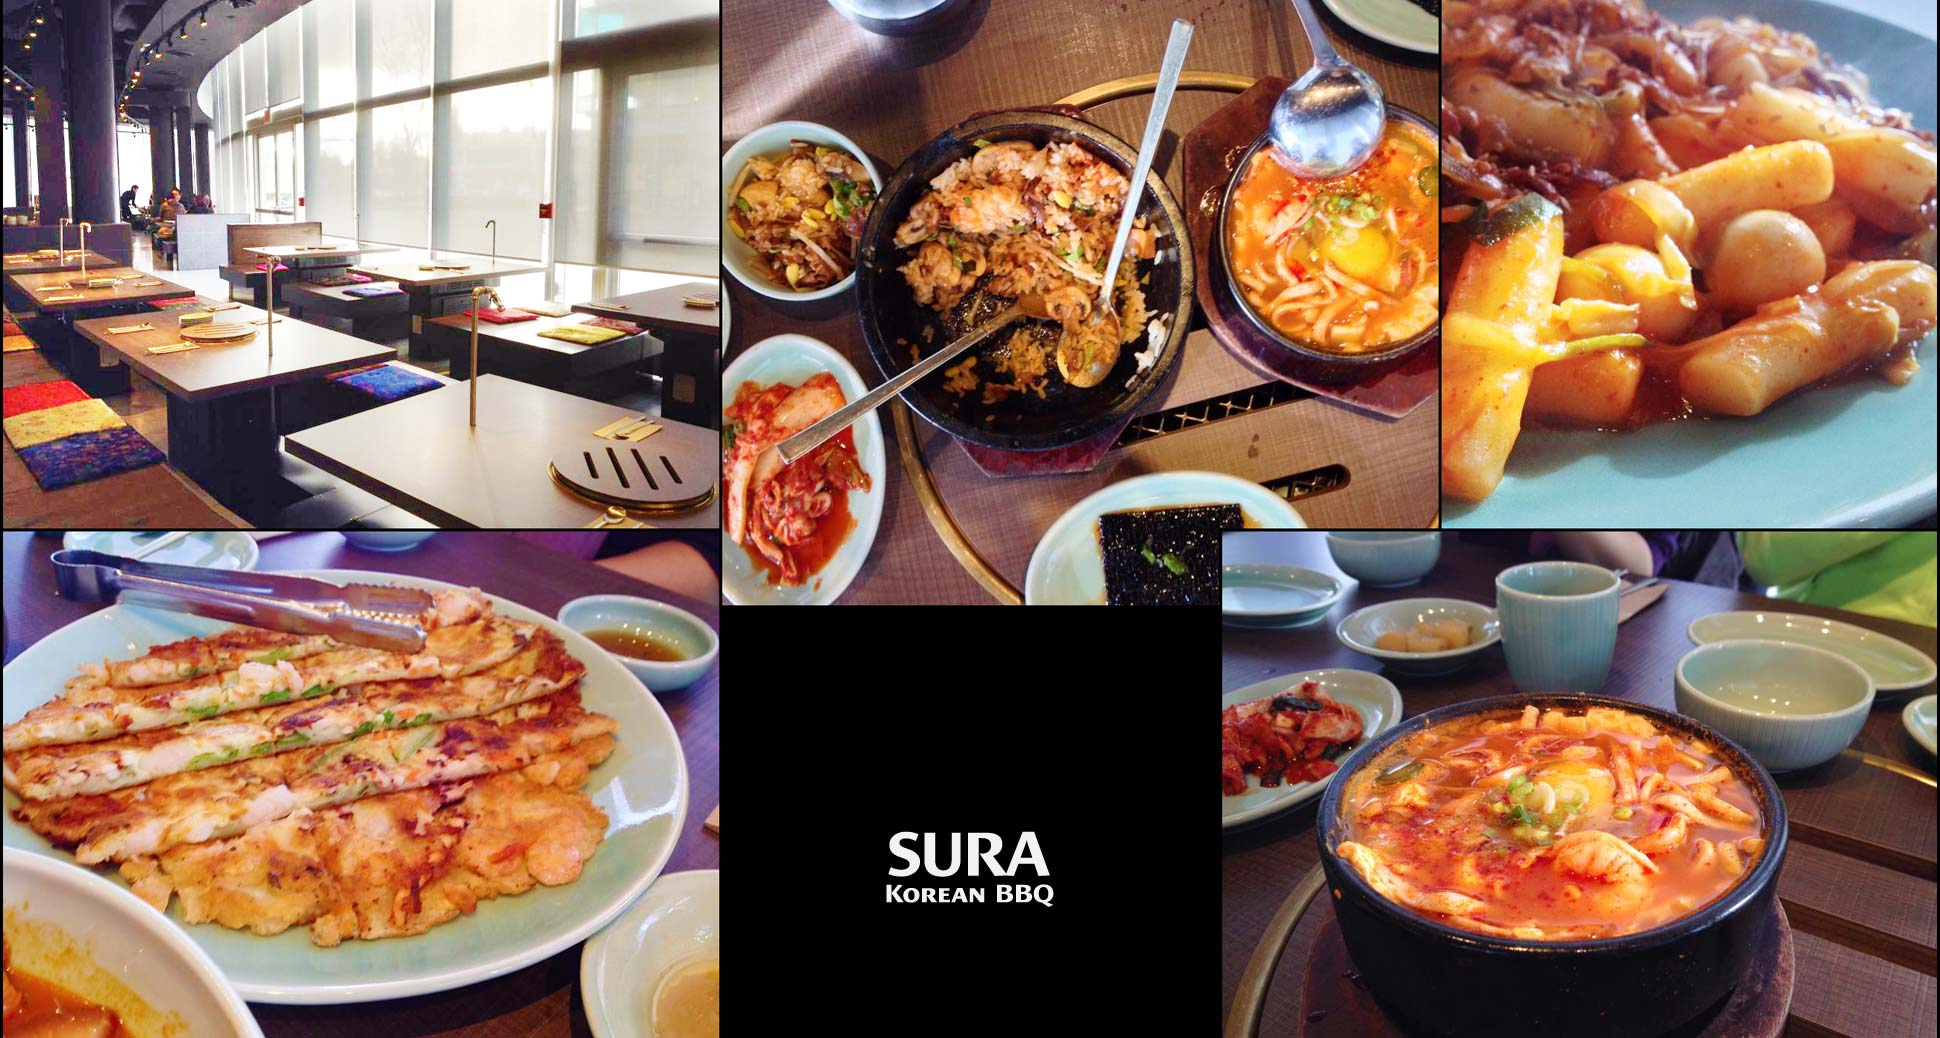 Nomss covers sura korean bbq restaurant